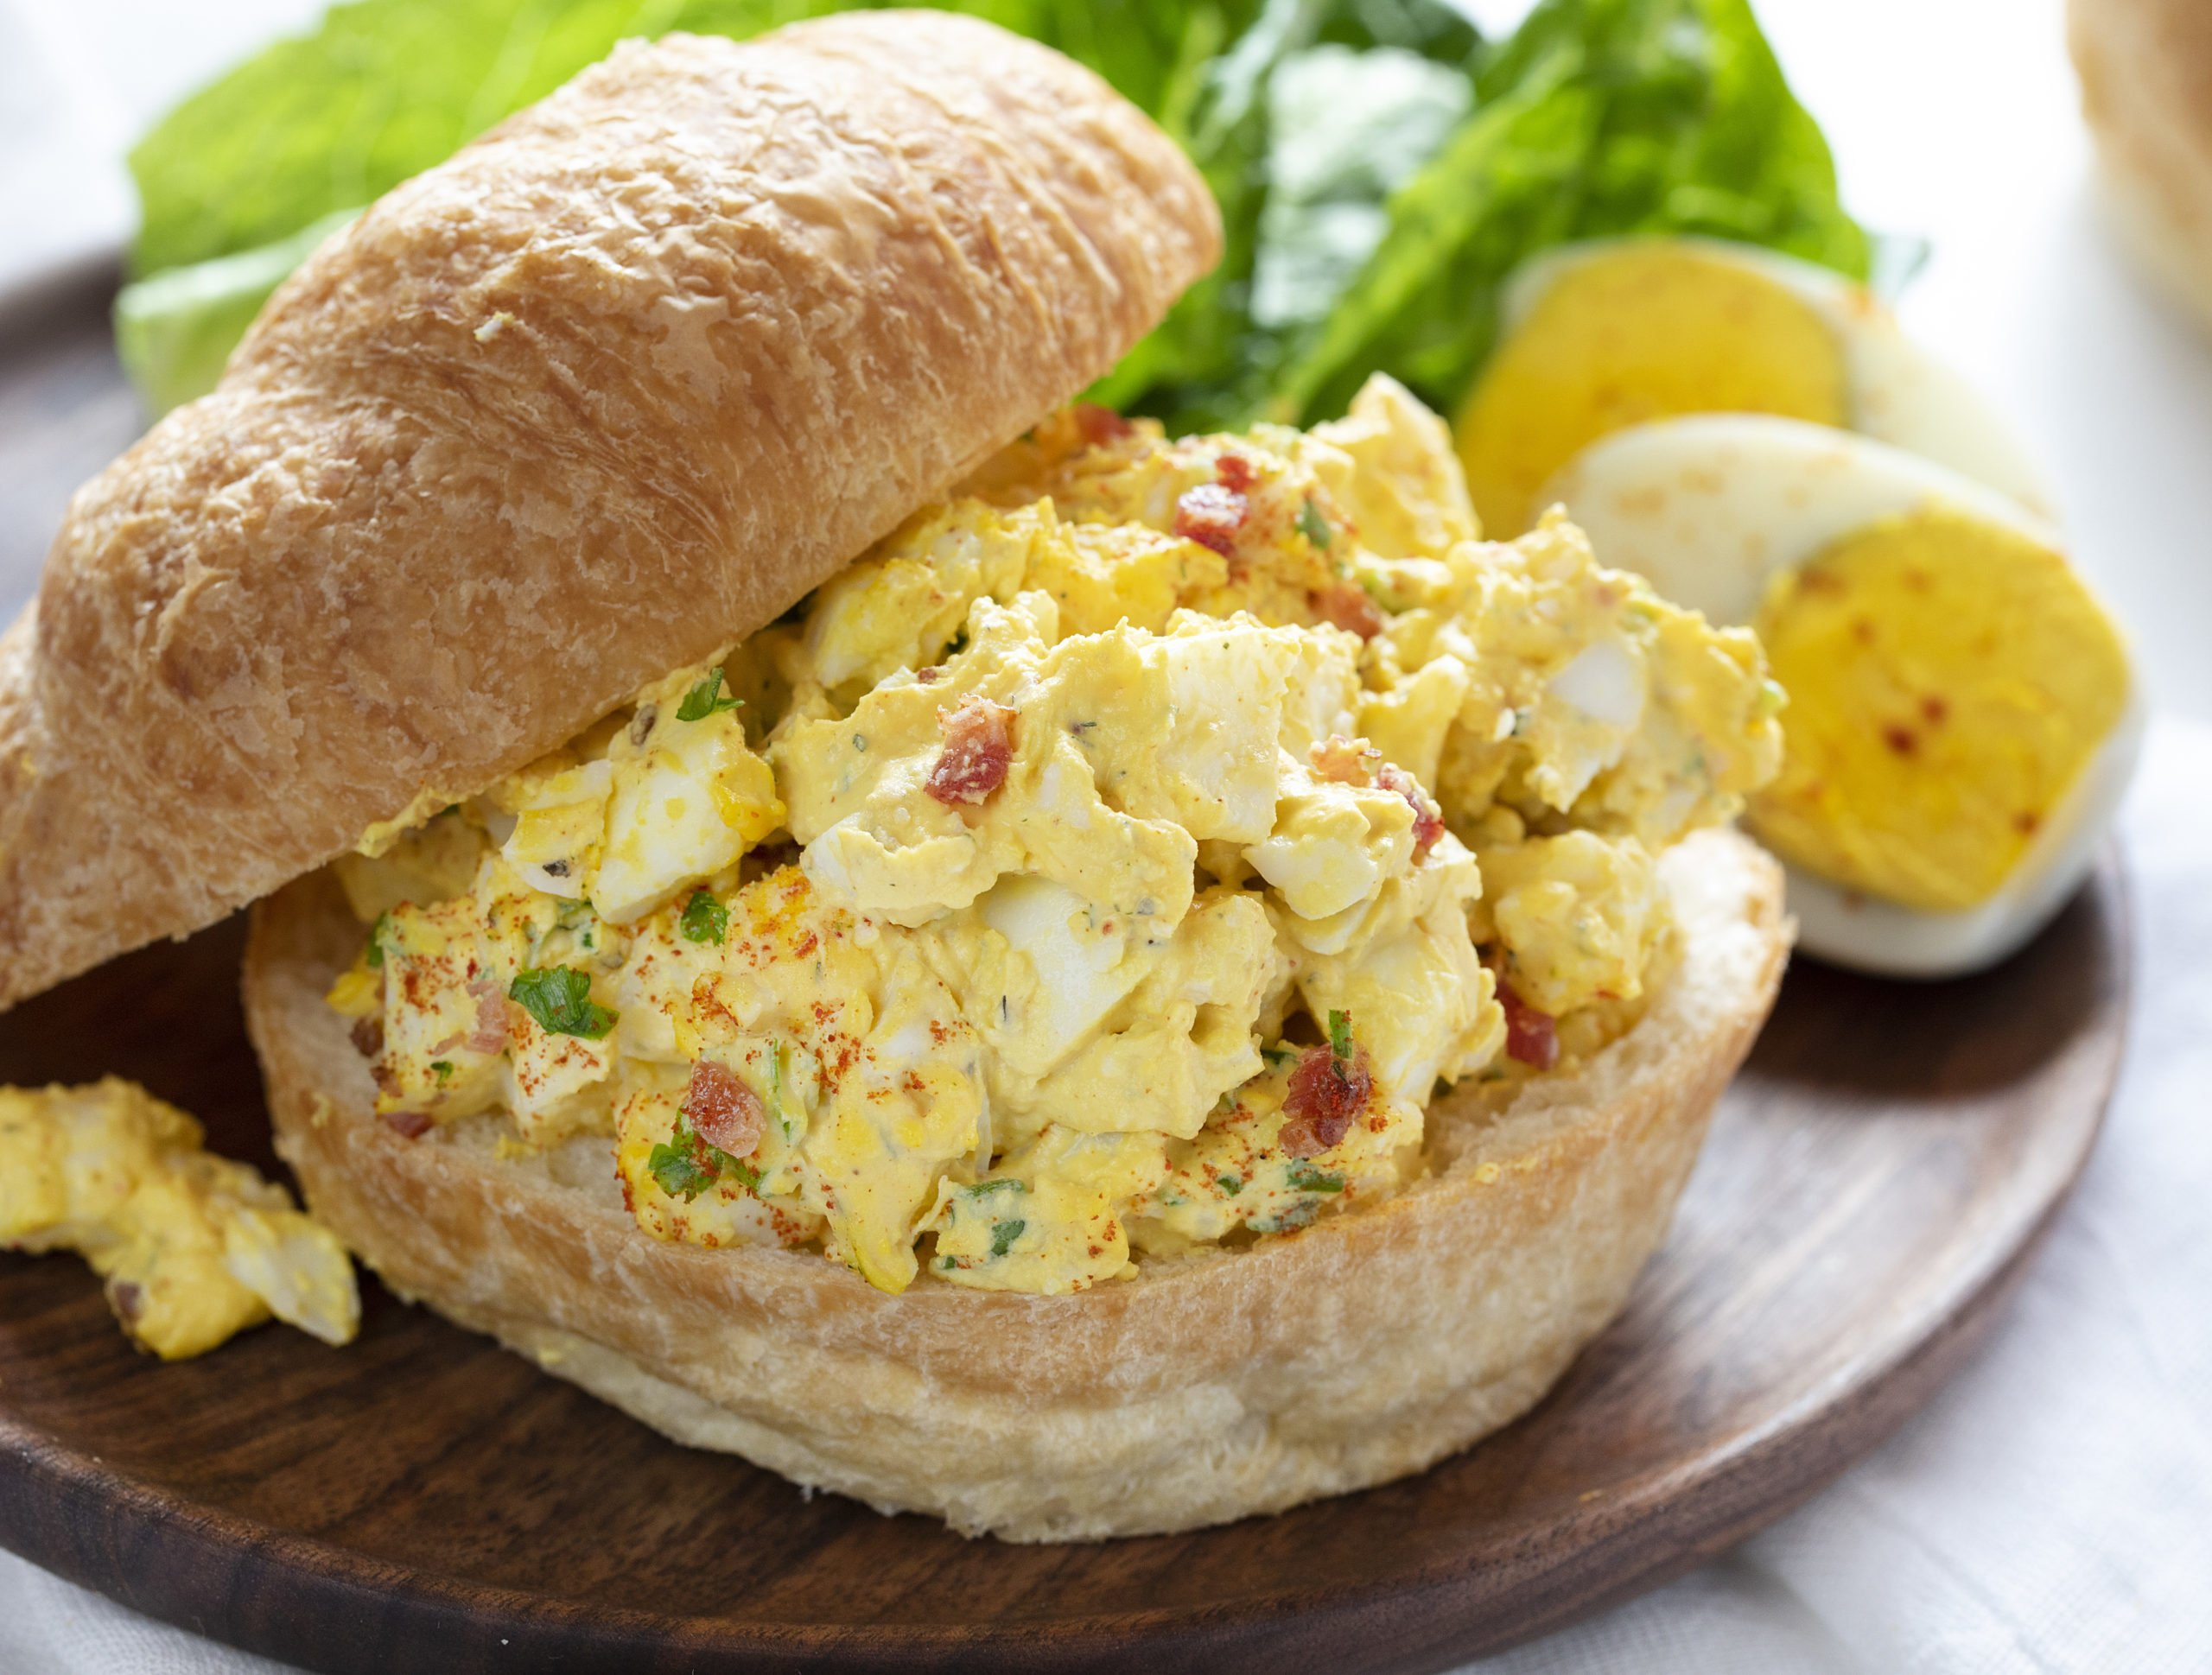 Deluxe Egg Salad Sandwich